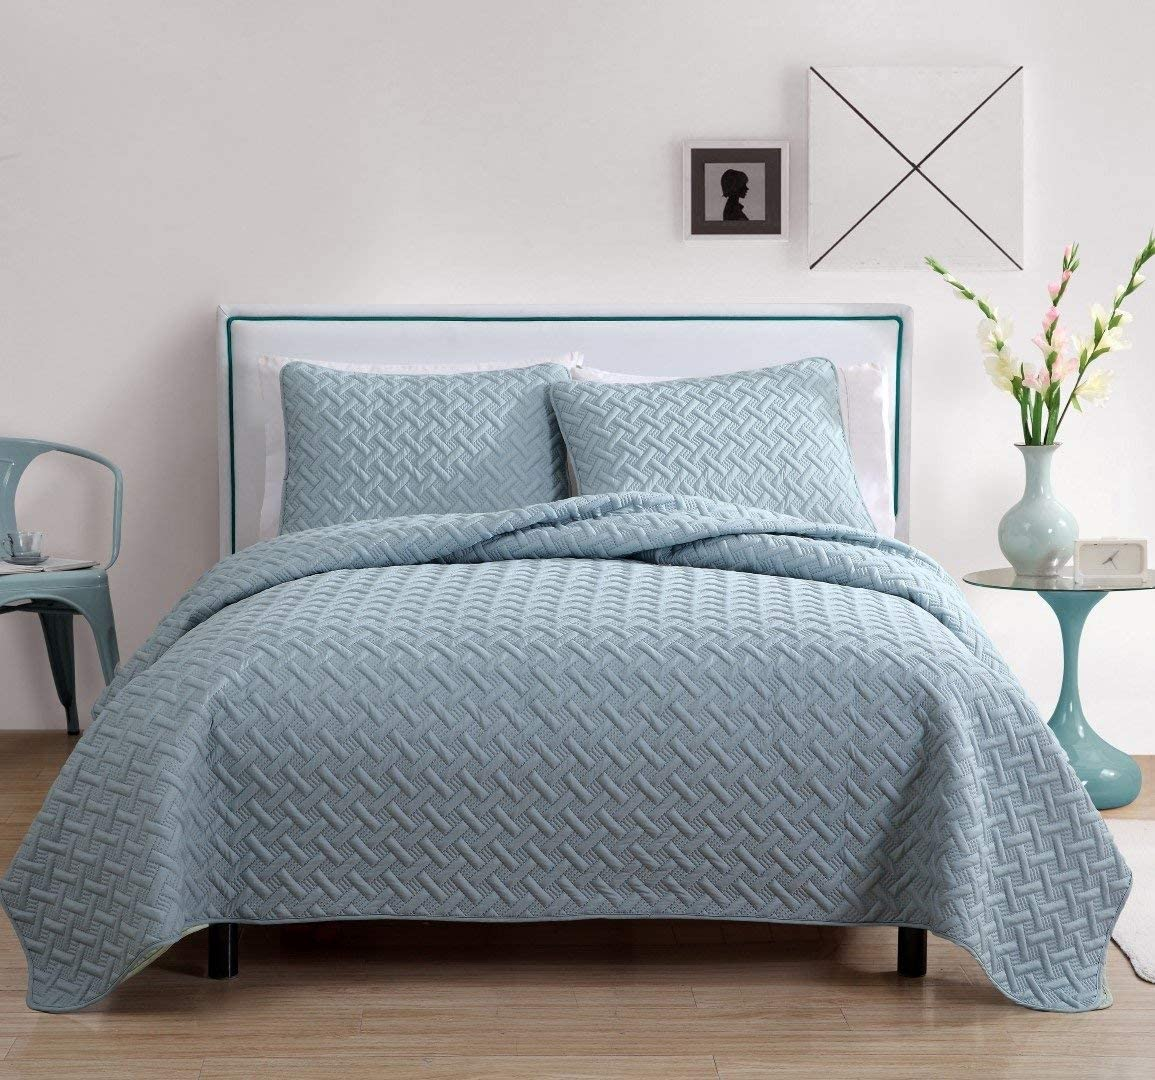 VCNY Home Nina Bedding Collection Luxury Premium Ultra Soft Quilt Coverlet, Comfortable 3 Piece Set, Modern Geometric Design For Home Hotel Decor, Full/Queen, Blue